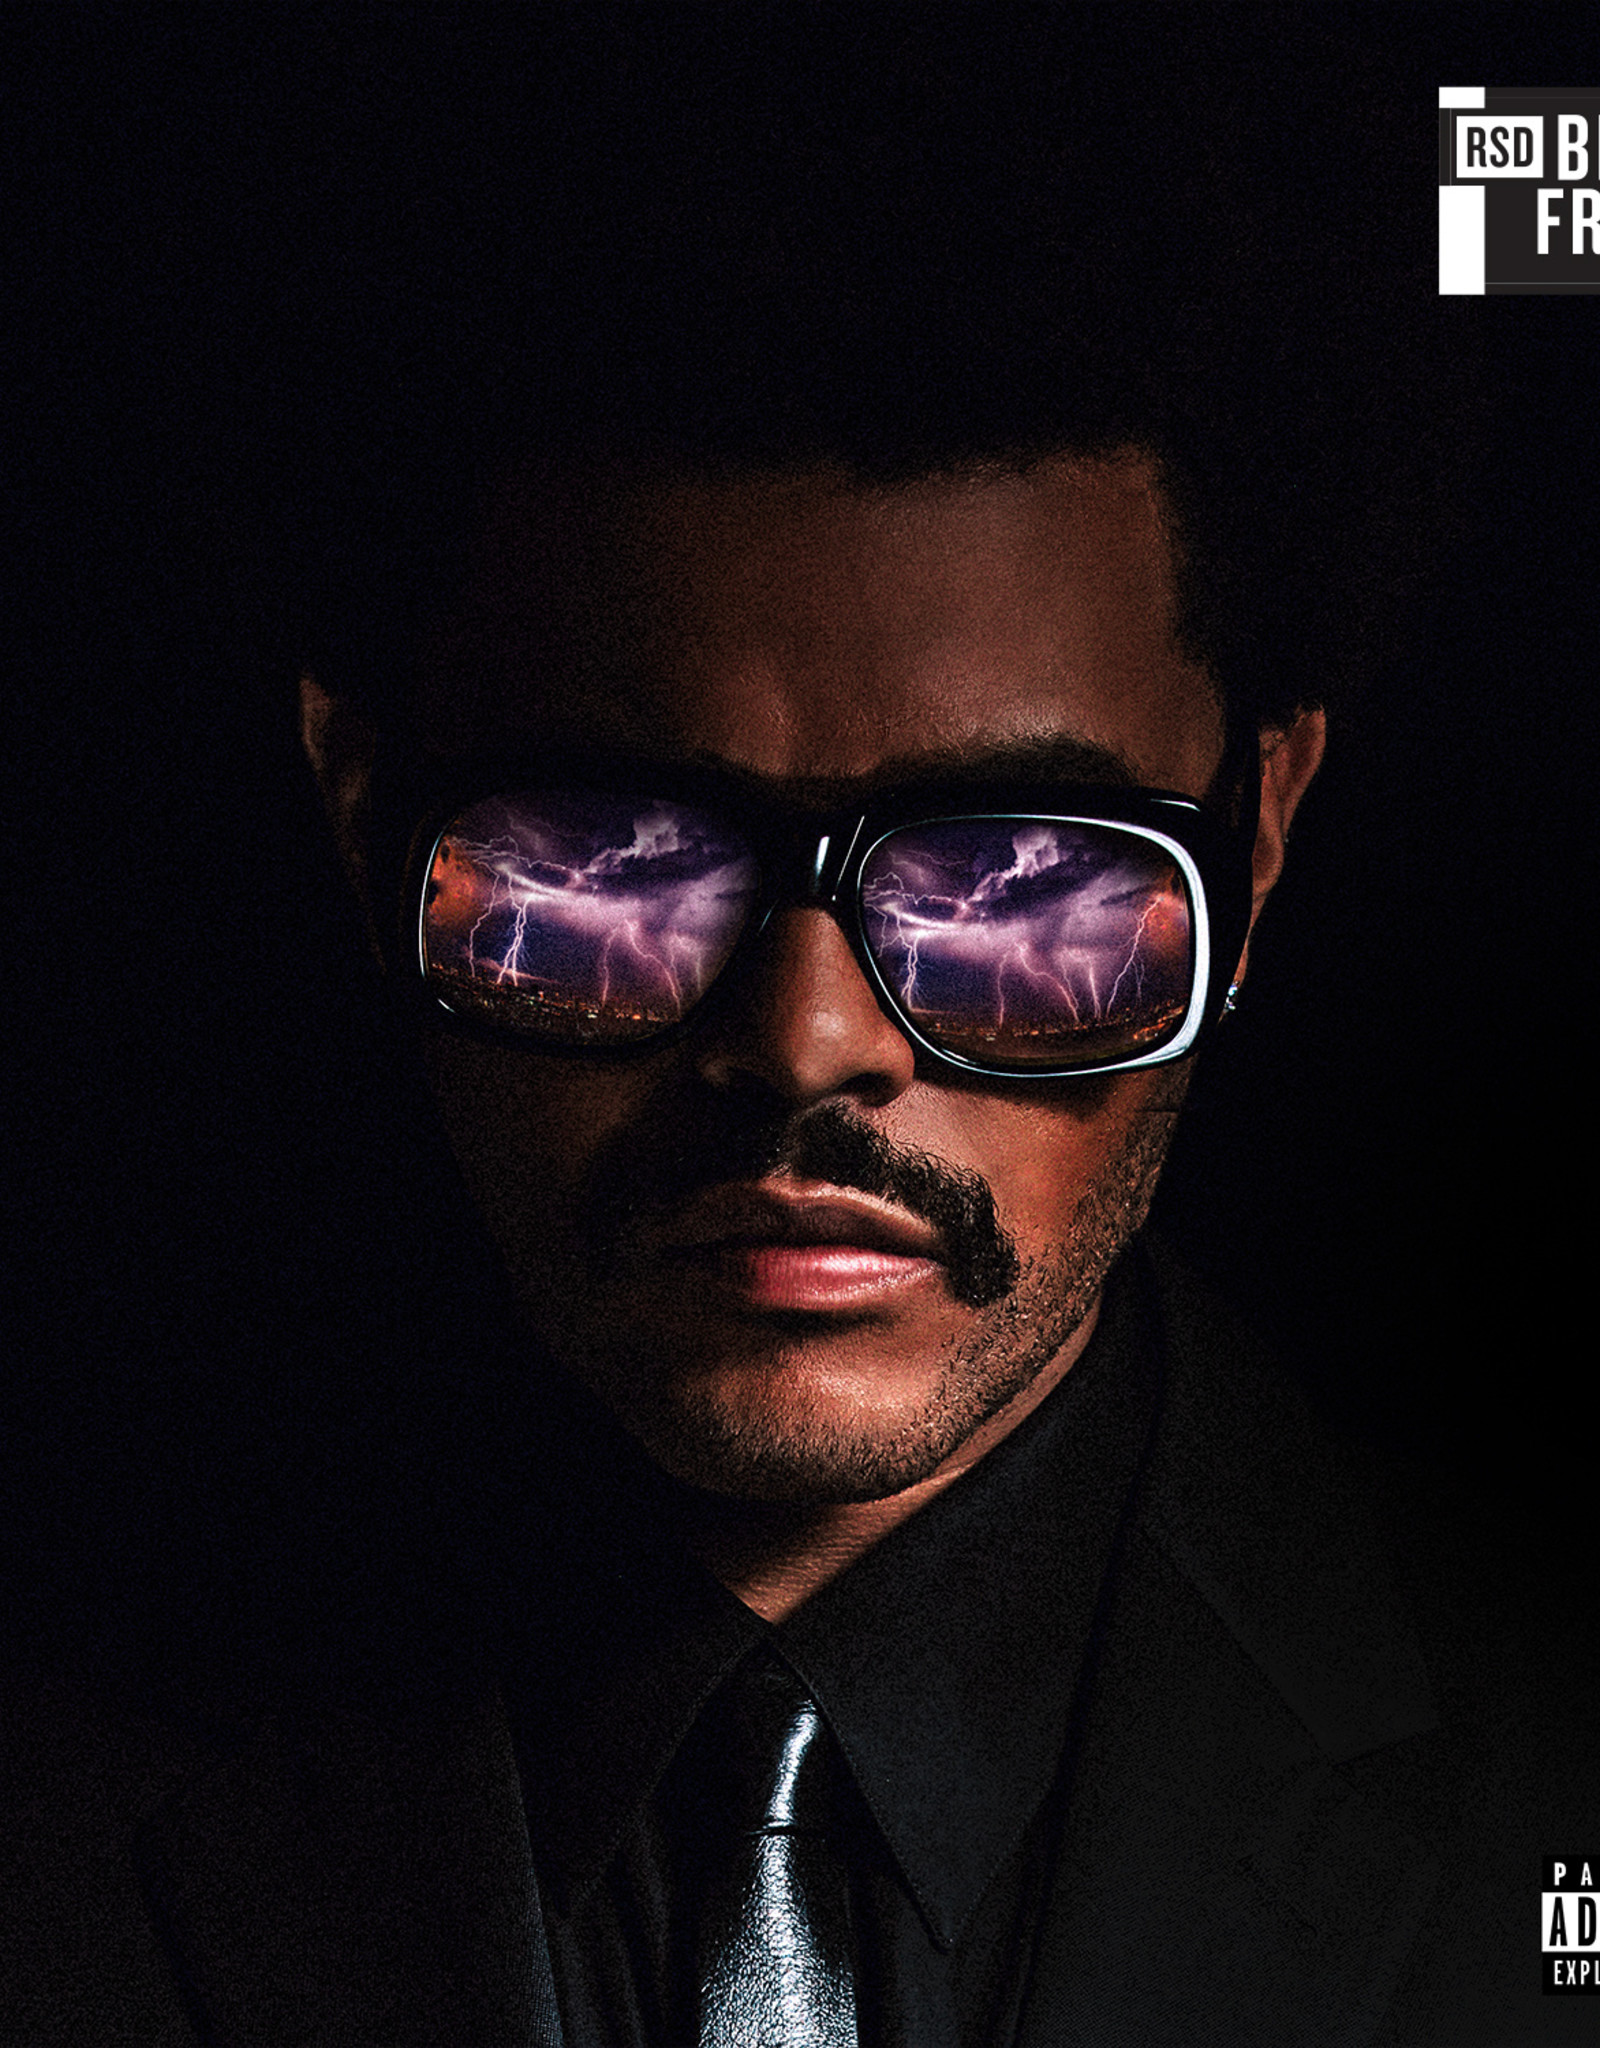 Weeknd - After Hours (X) (Remixes) (Translucent Purple Vinyl) (RSD 2020 BF)